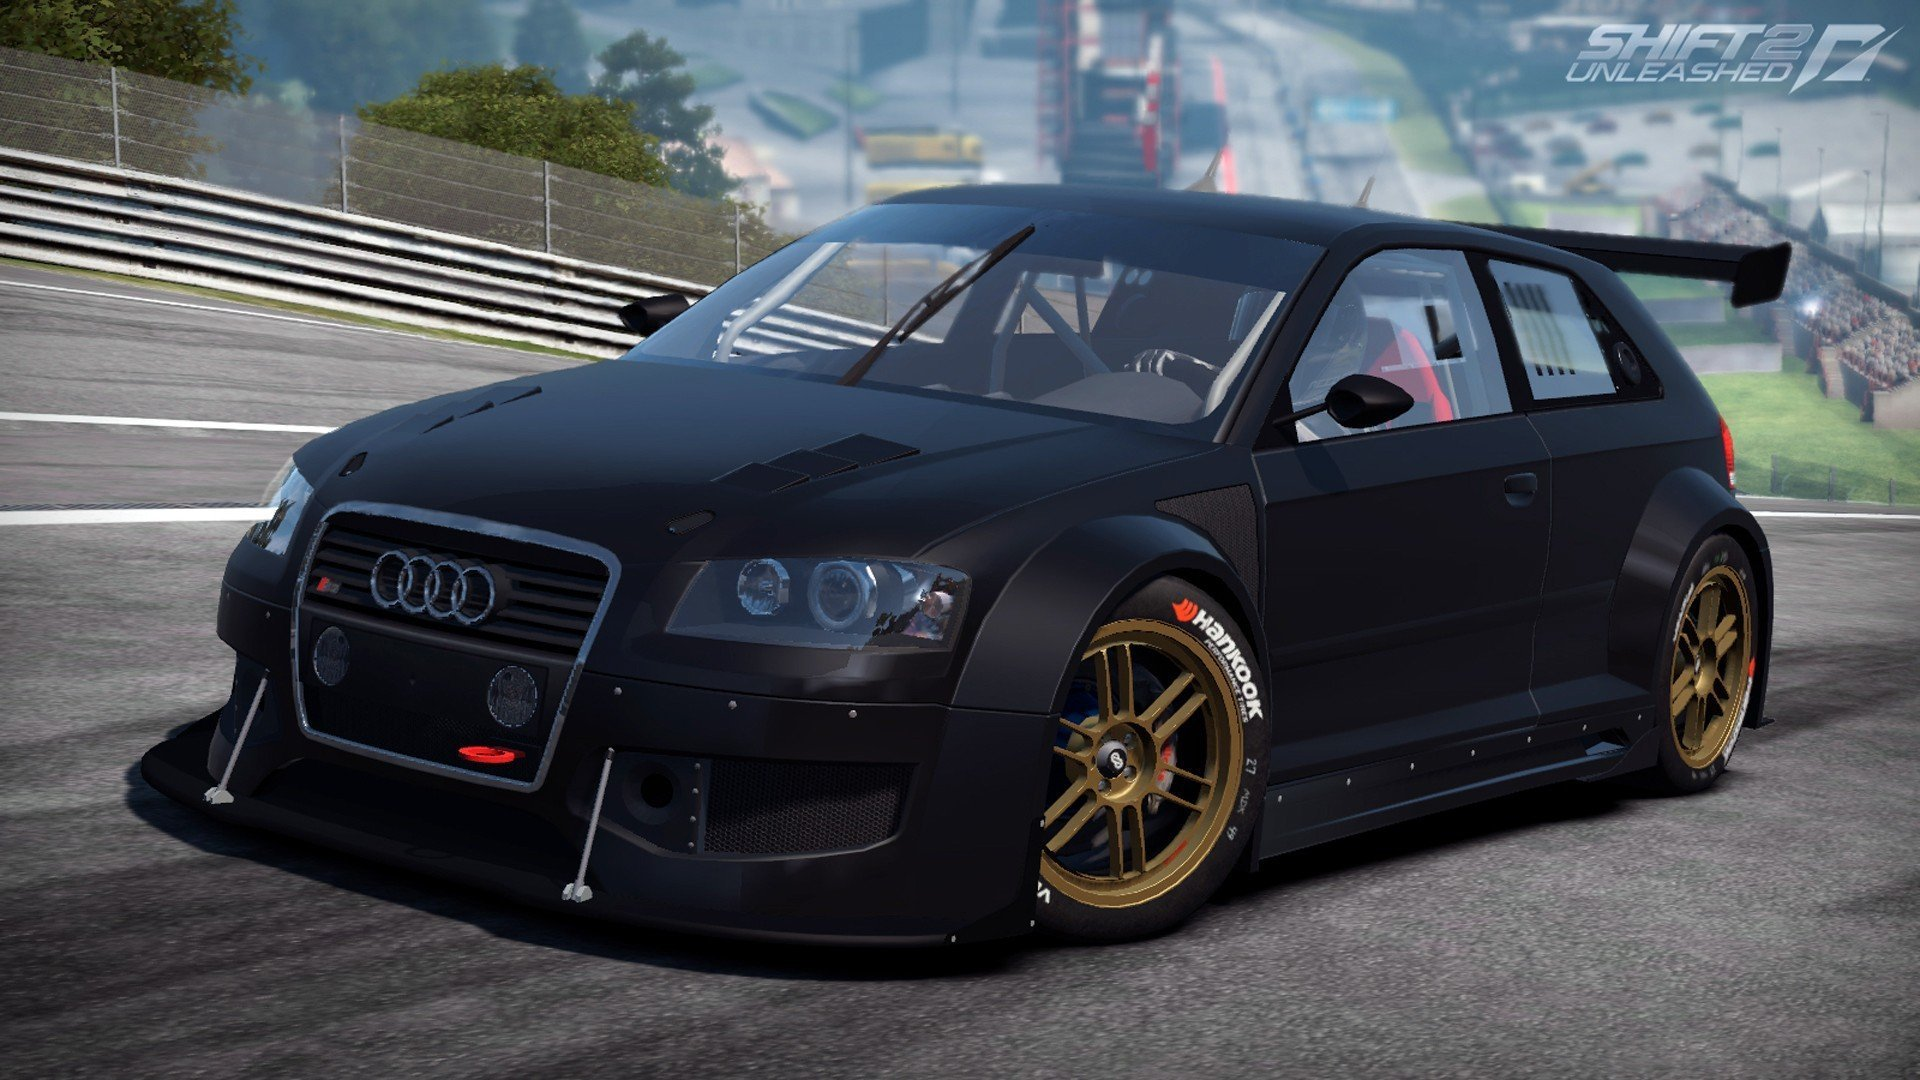 Latest Video Games Cars Audi A3 Games Need For Speed Shift 2 Free Download